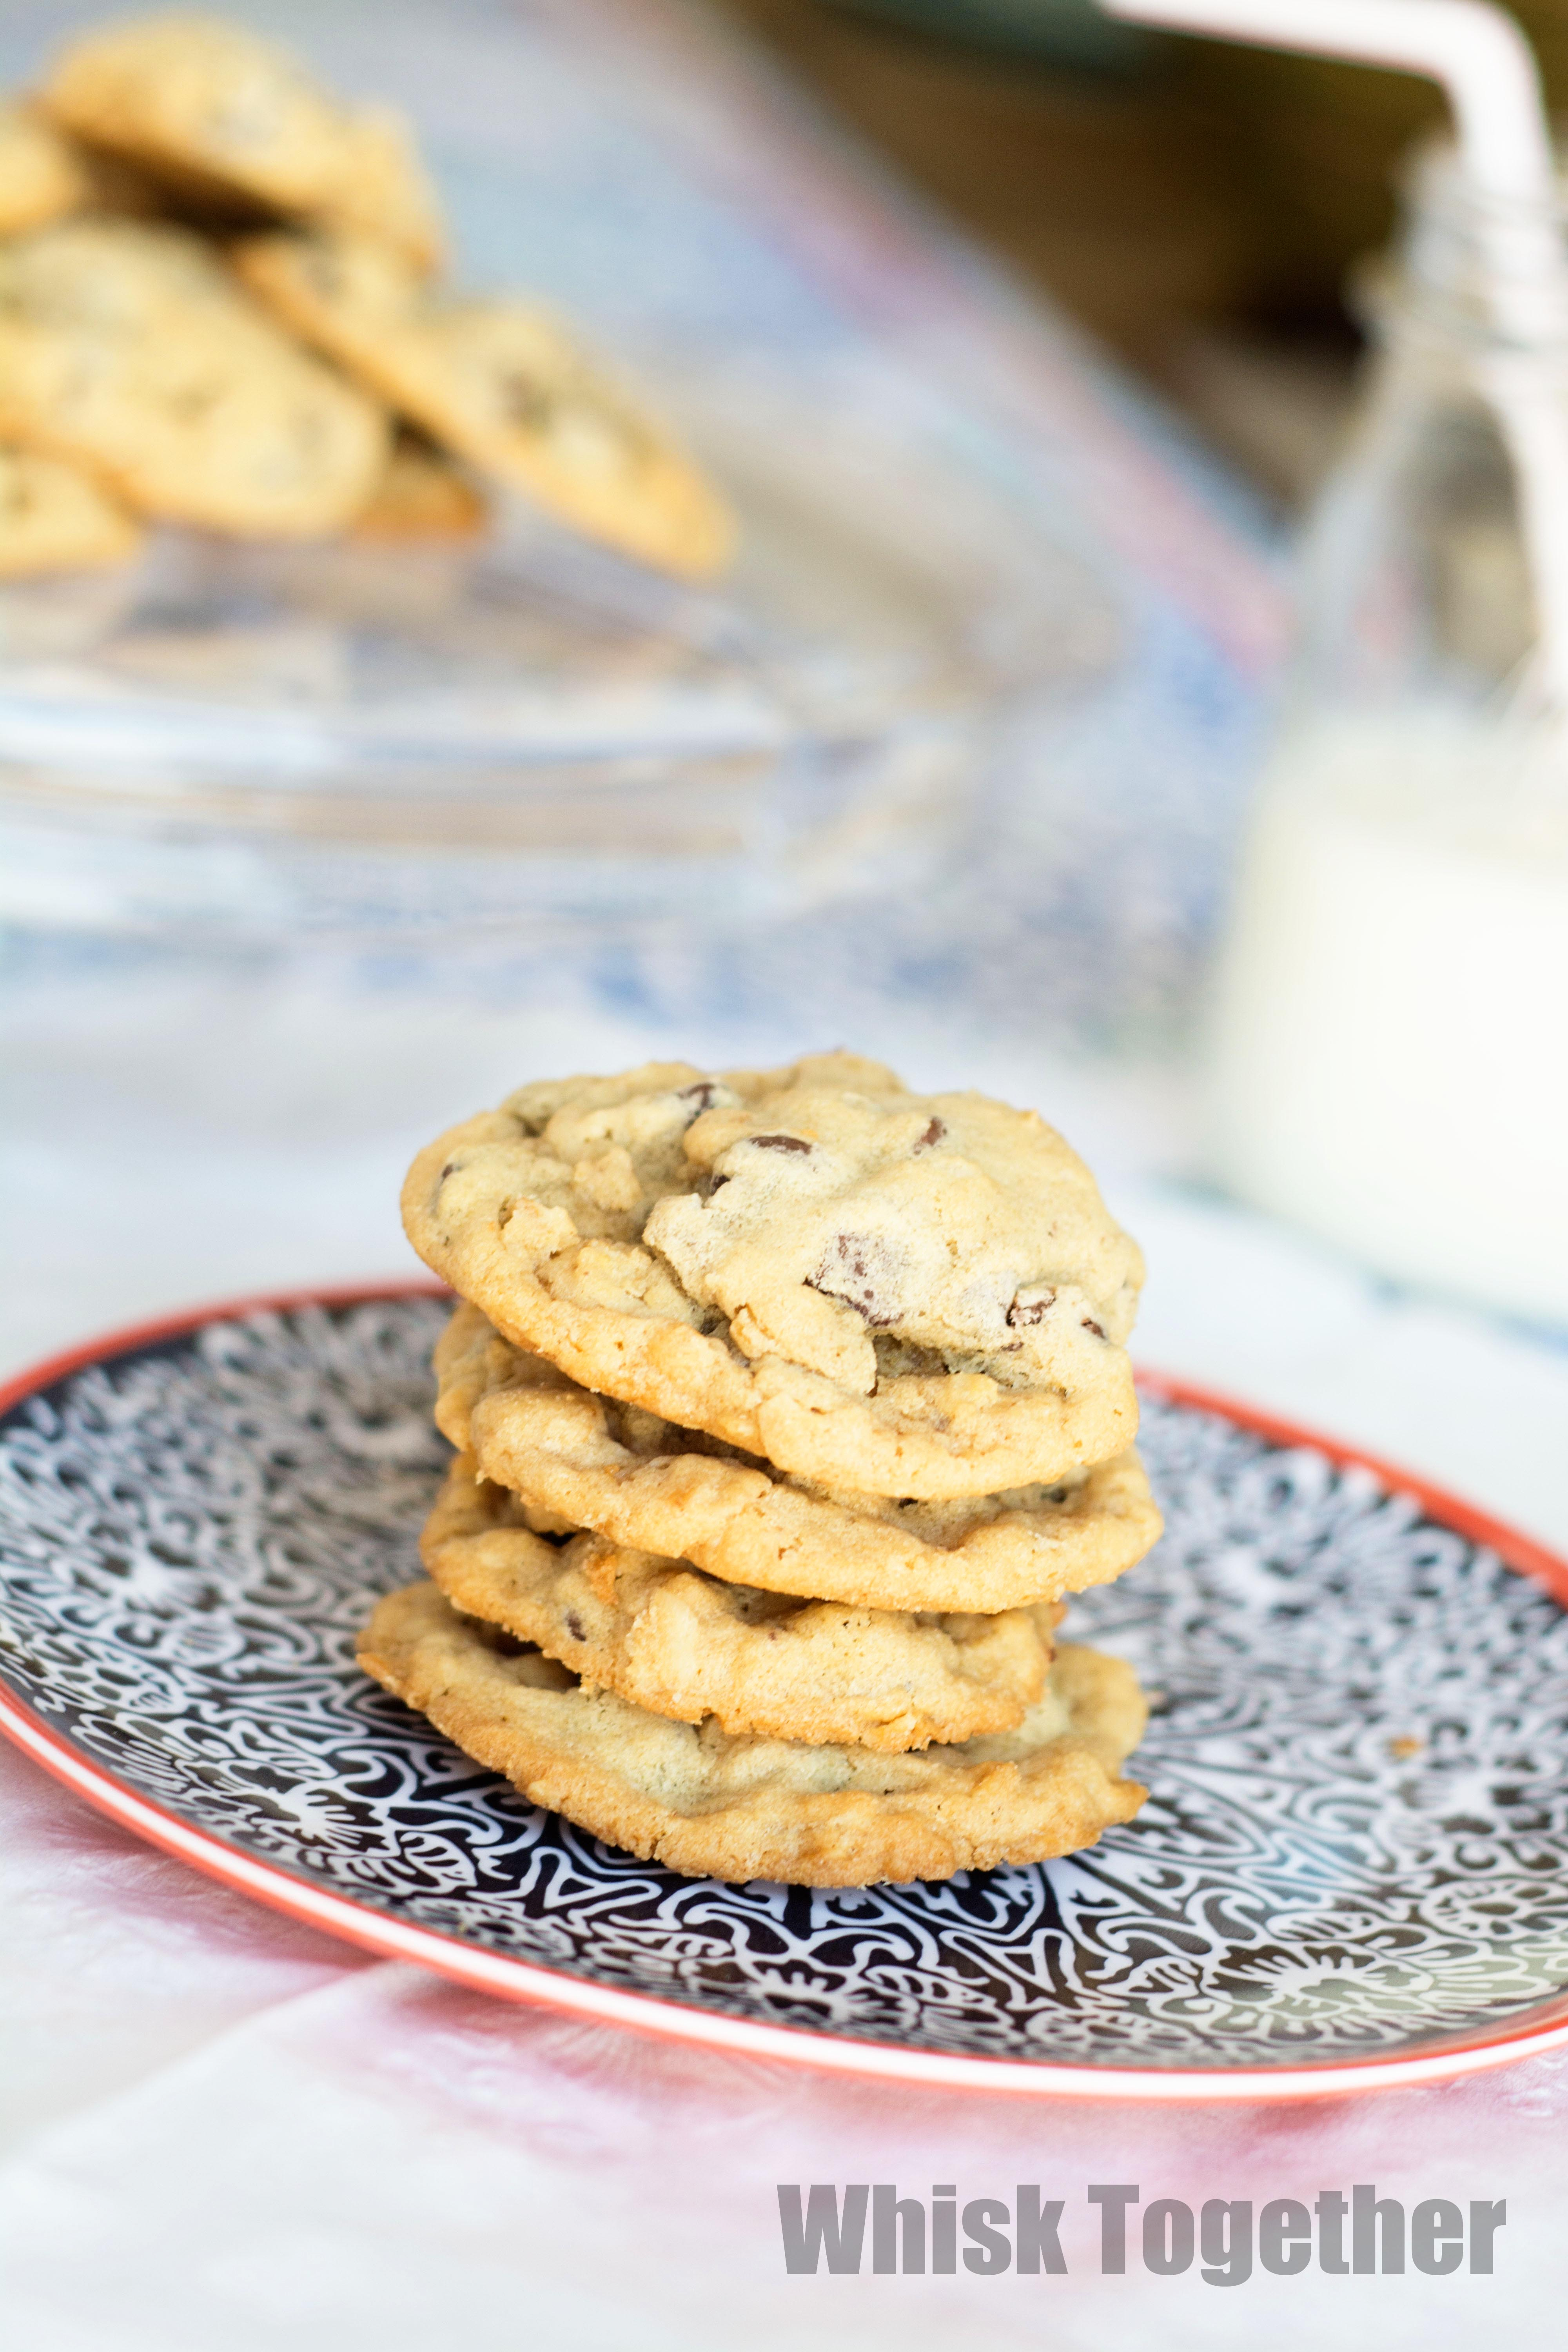 Chewy Chocolate Chip Cookies on Whisk Together.com